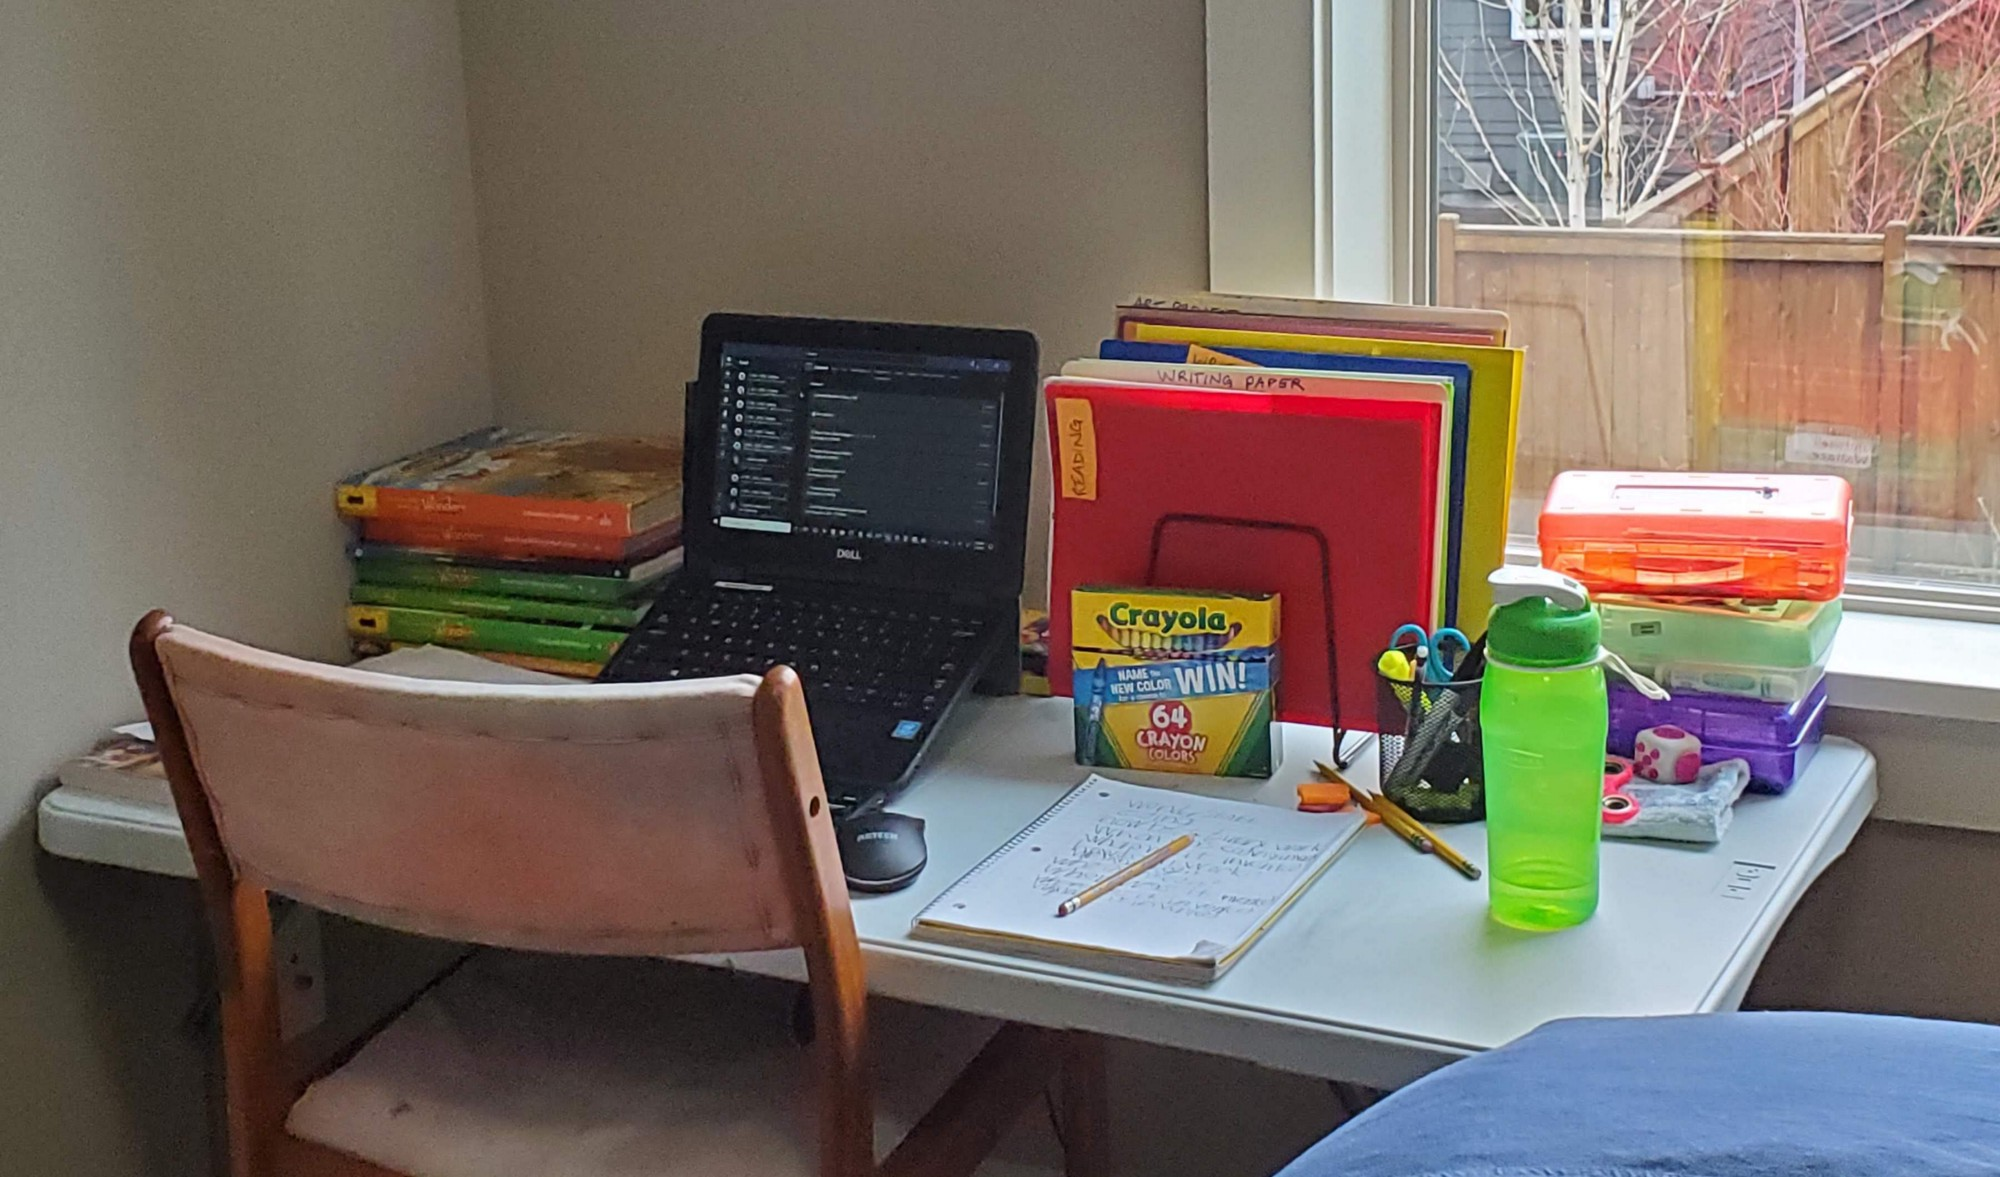 A folding table in a guest bedroom with a laptop, folders, and other school materials arranged on it.